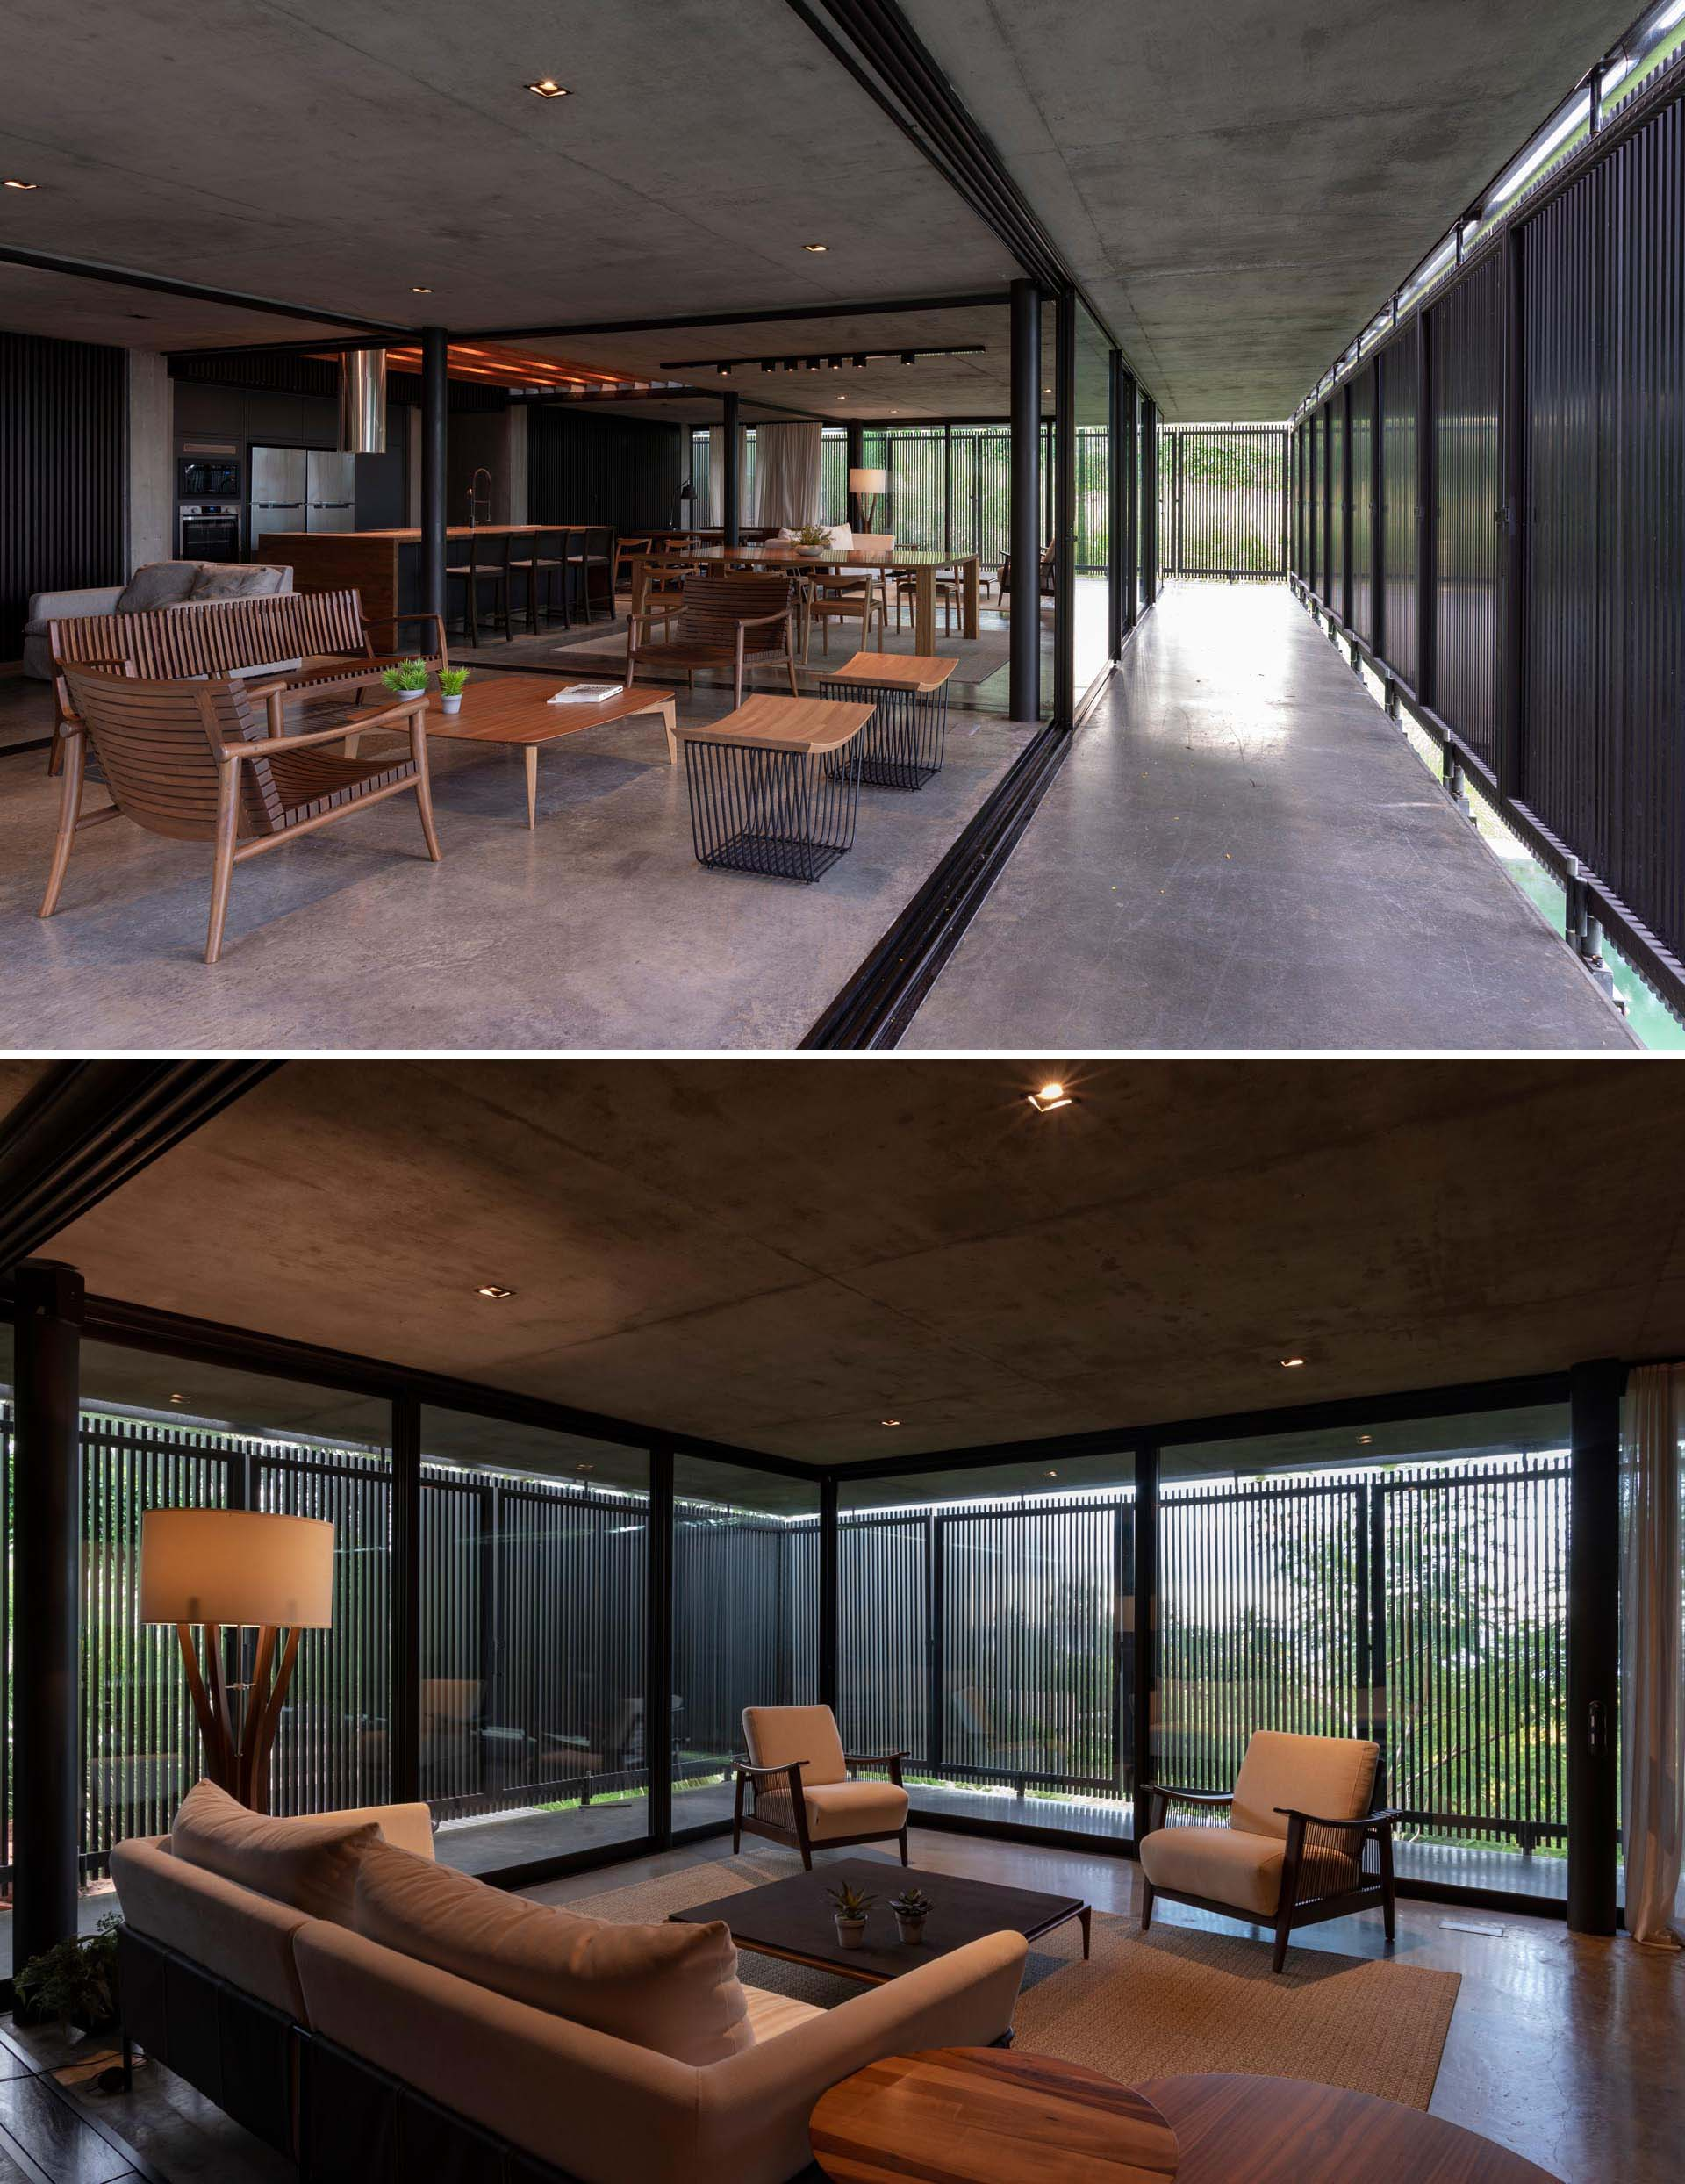 A modern house with an open floor plan, black wood slat screens, glass walls, and concrete floors.